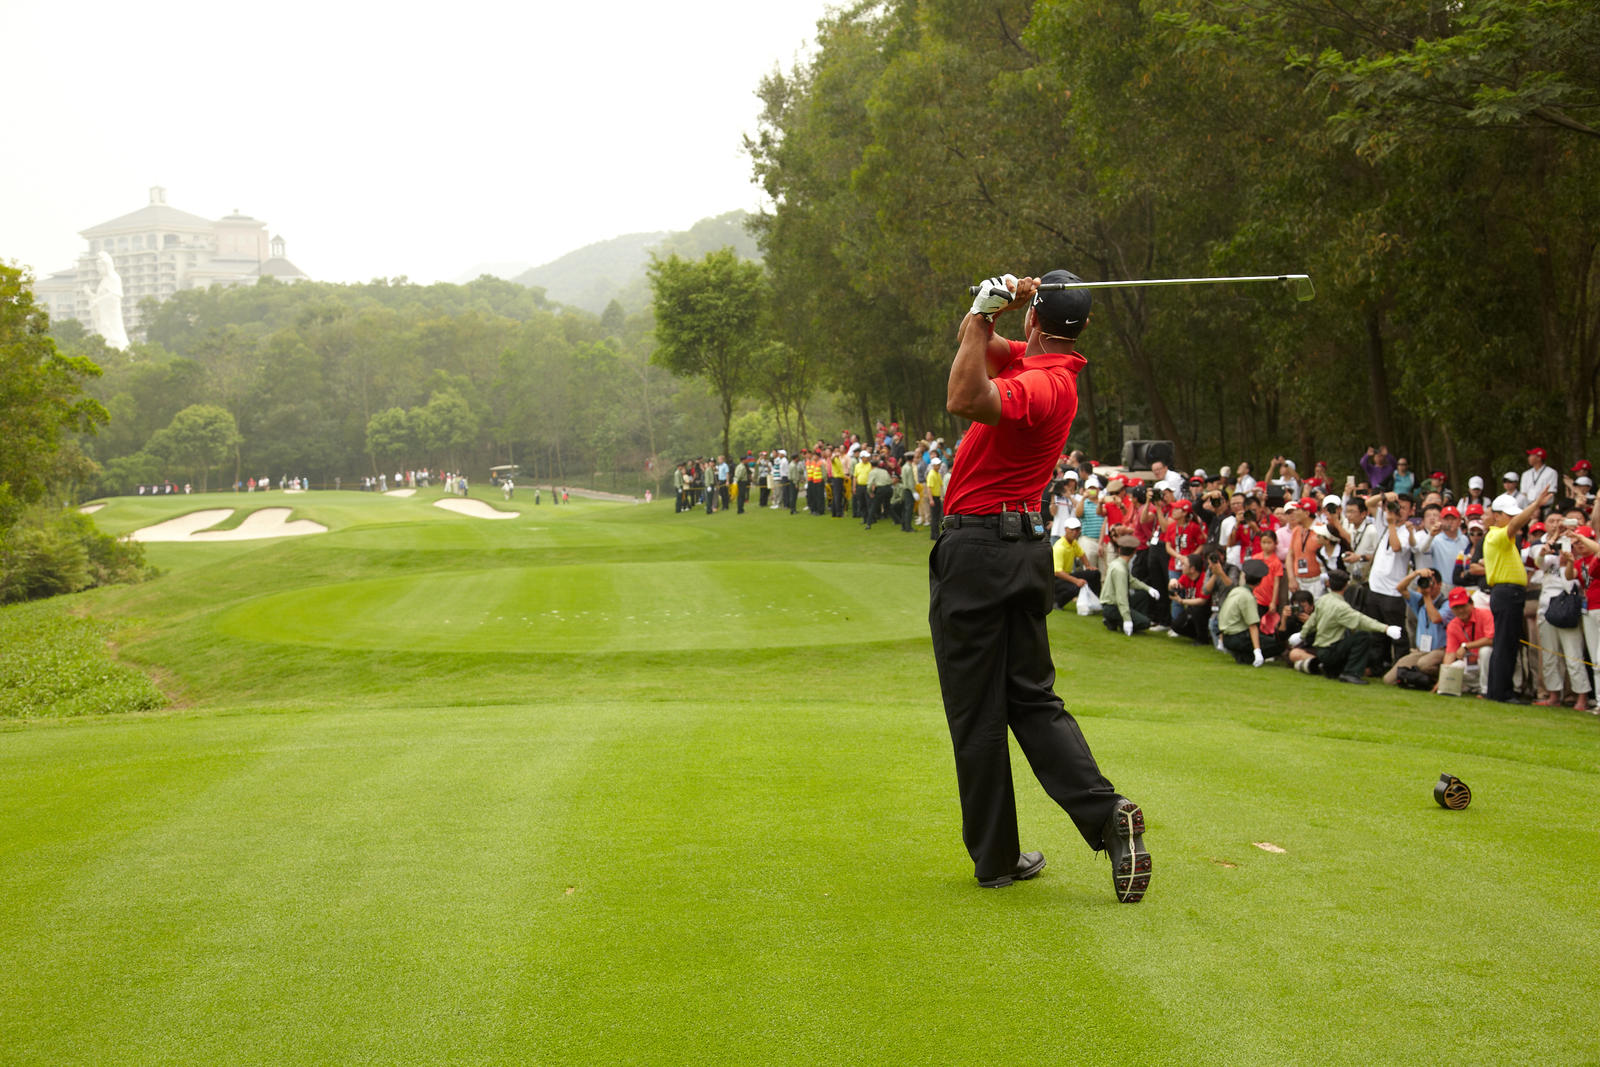 Tiger Woods Returns to Asia to Energize Young Athletes' Love for Golf - Nike News